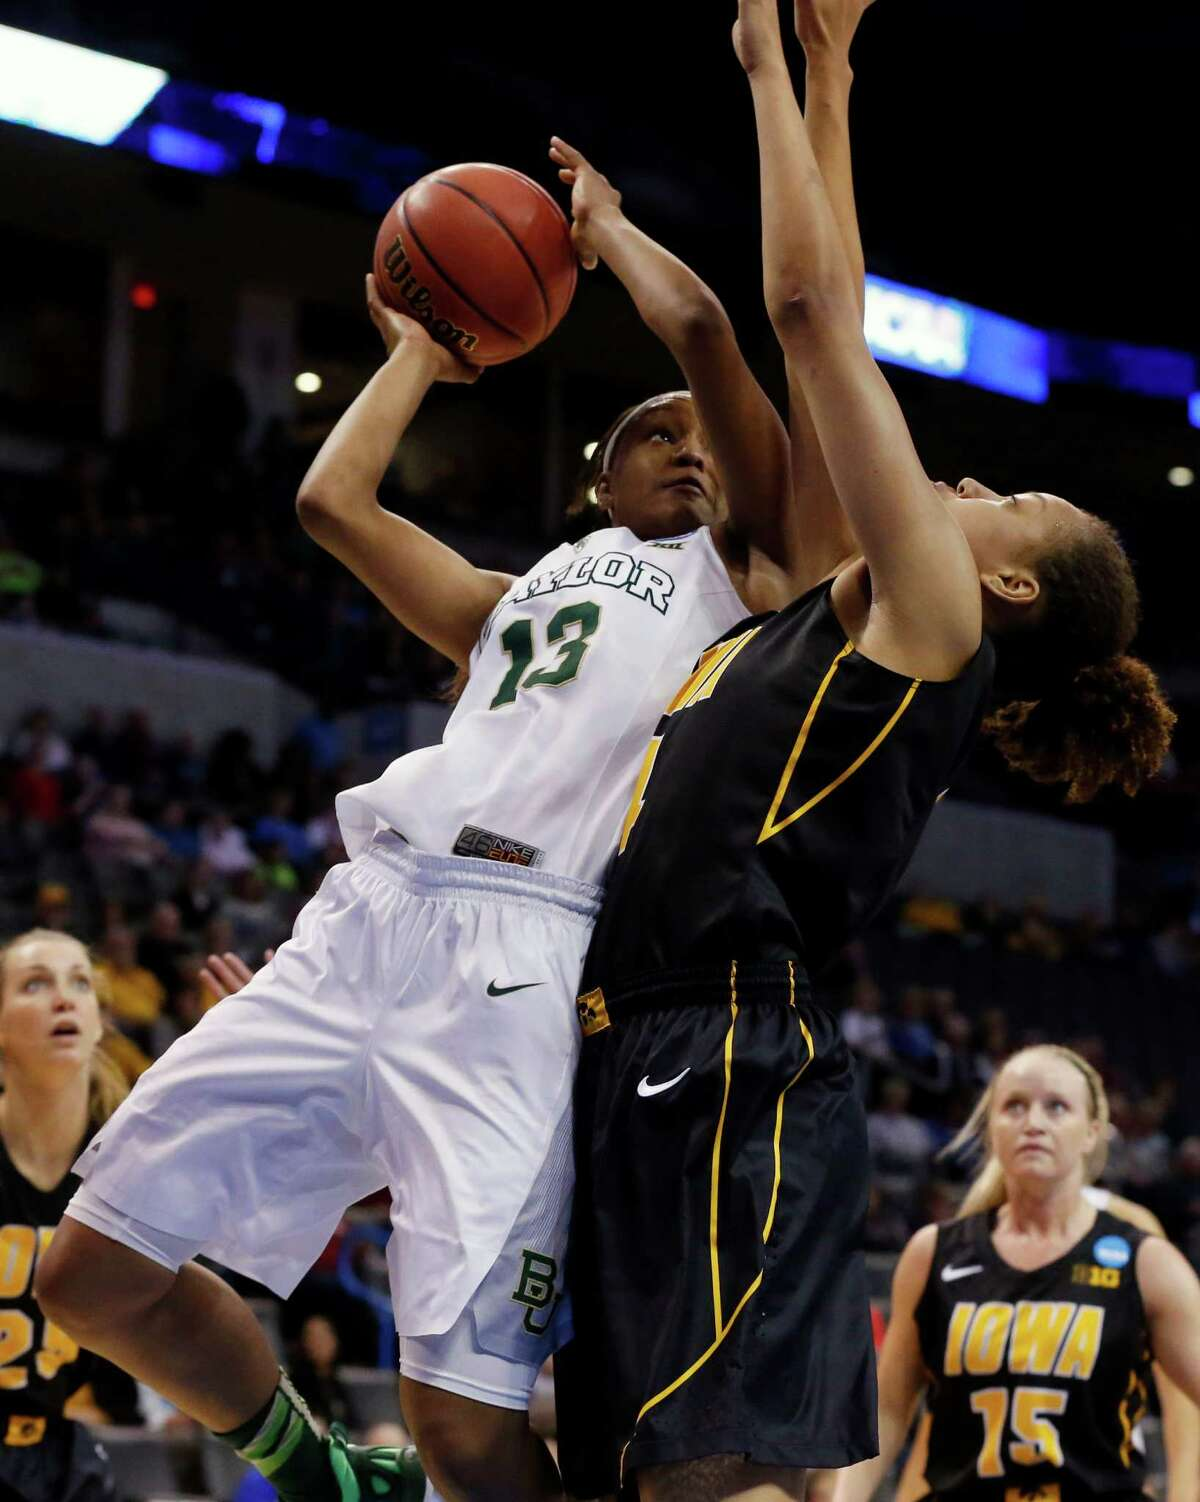 Baylor's Nina Davis (13) goes up for two of her 20 points as Iowa's Chase Coley defends in the first half of the Lady Bears' victory at Oklahoma City.